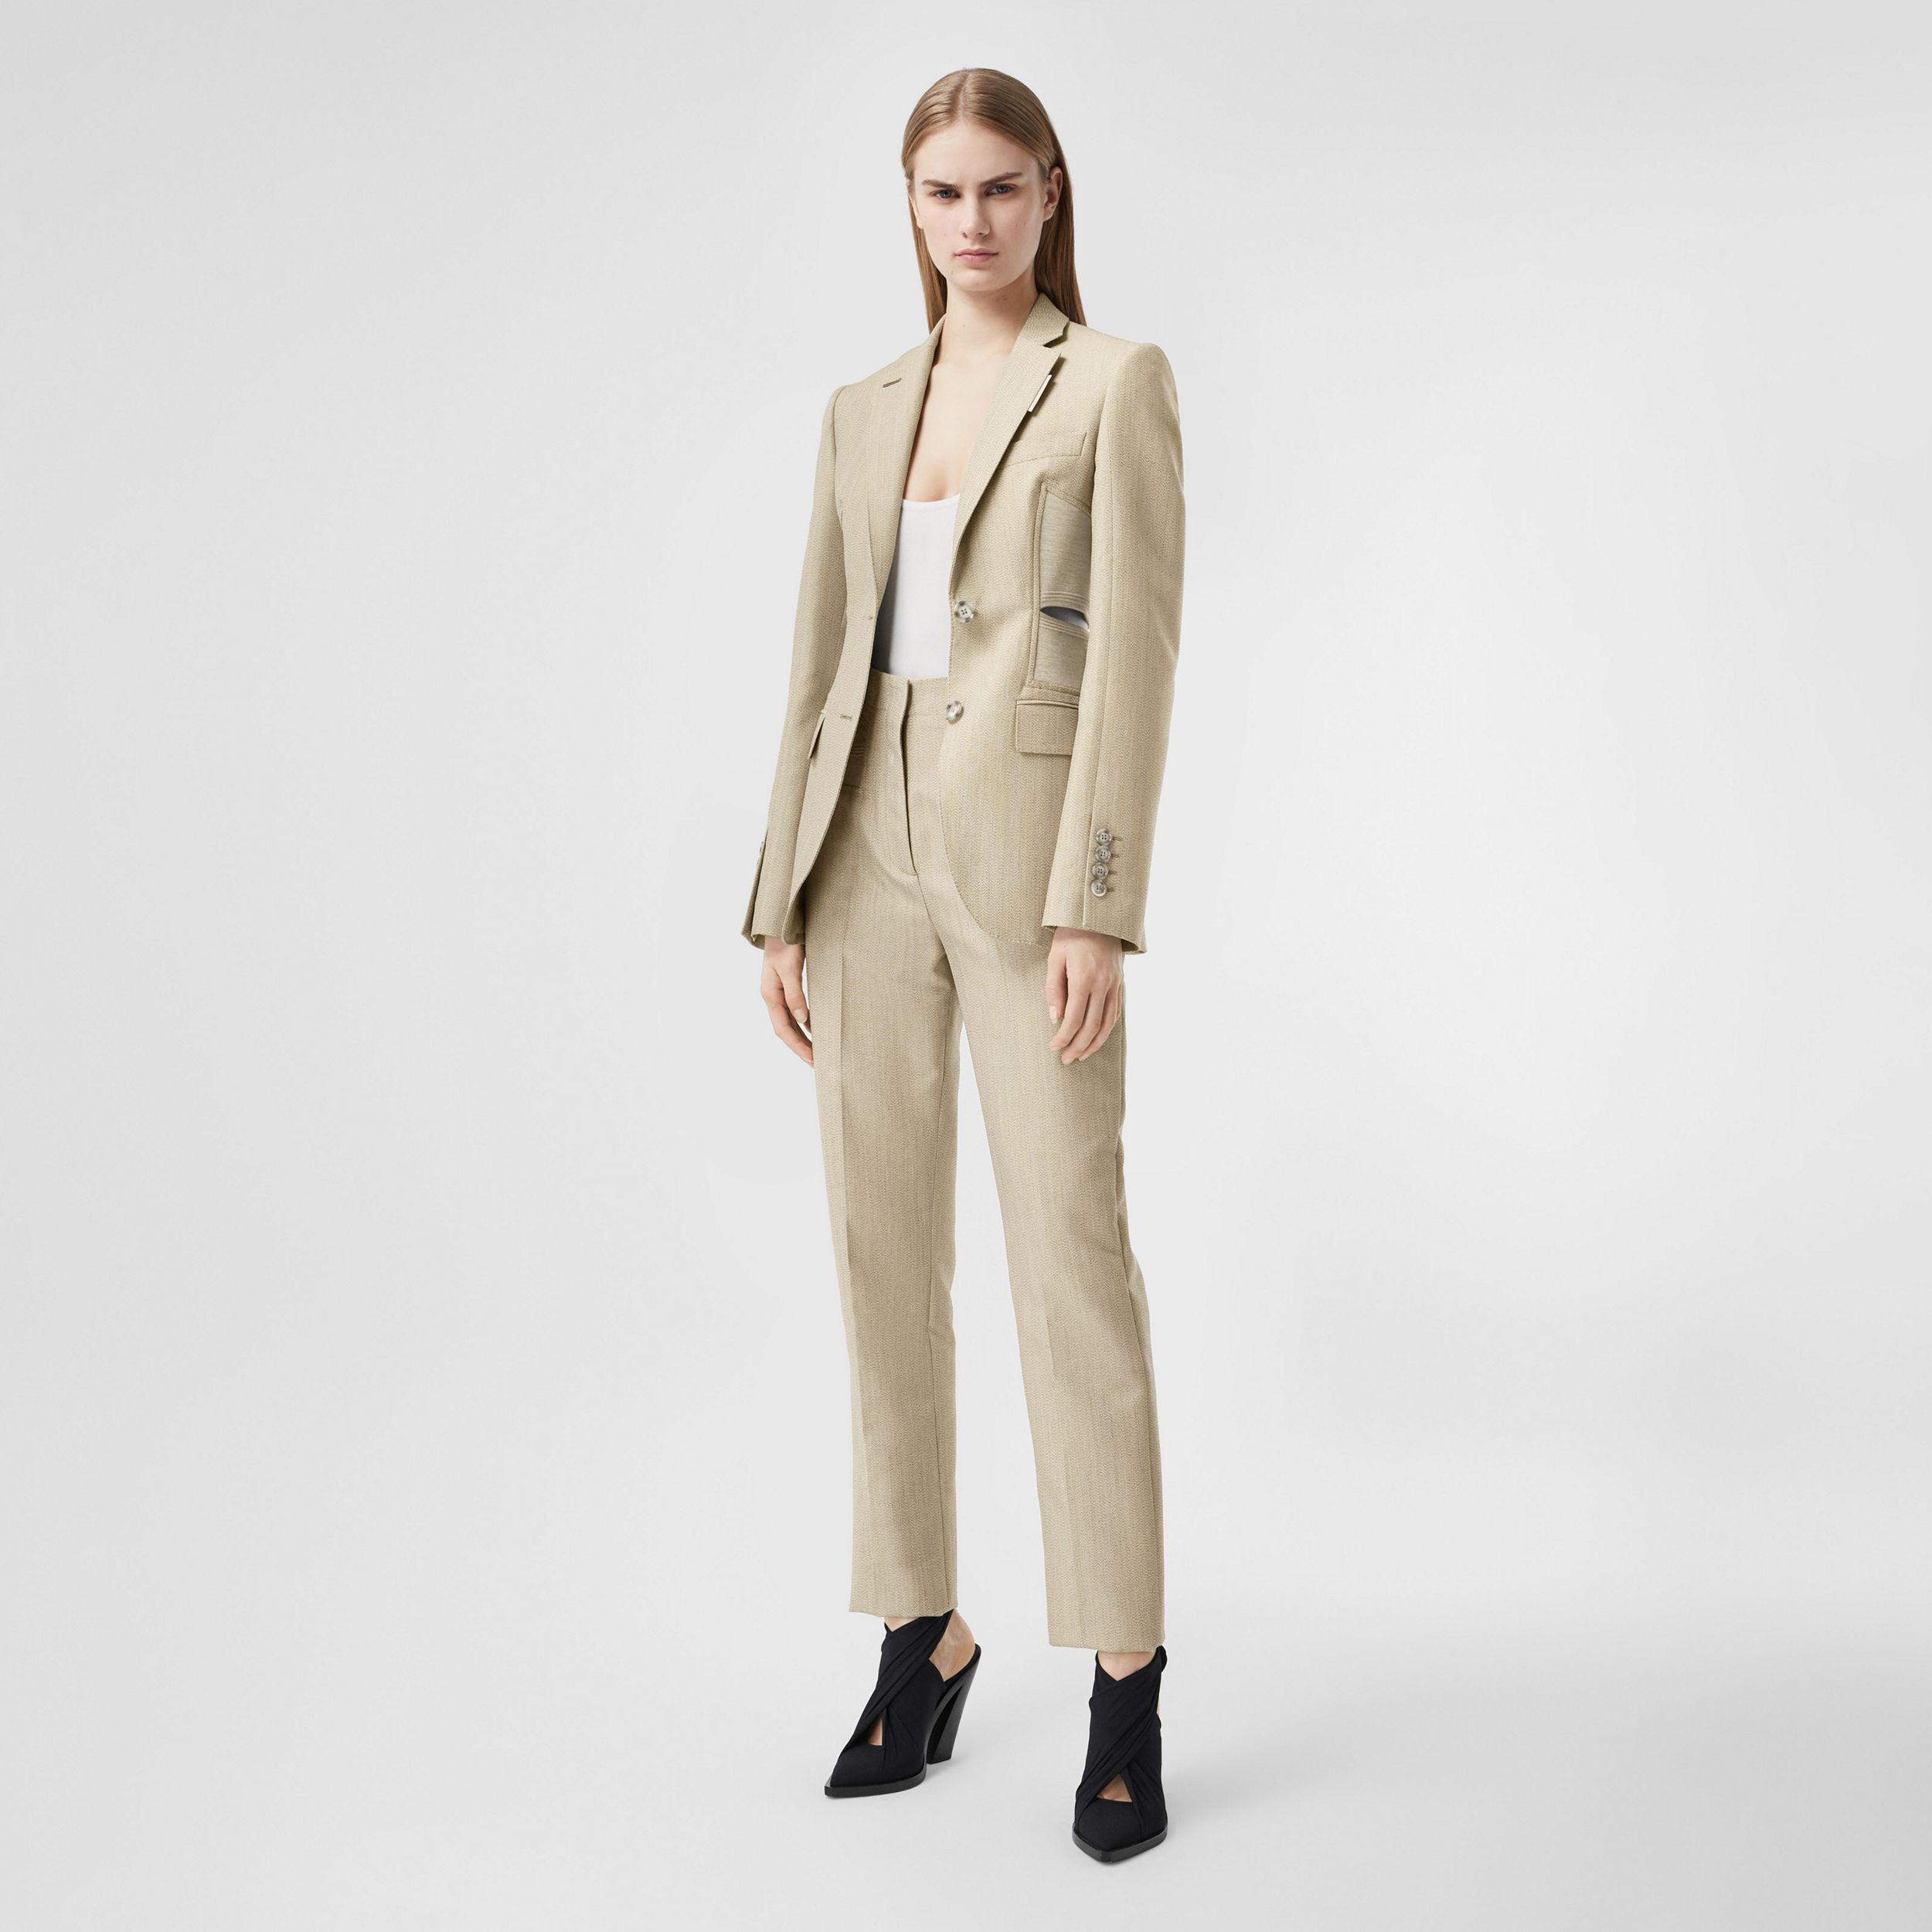 Cut-out Detail Technical Wool Blazer in Grey - Women | Burberry - 1